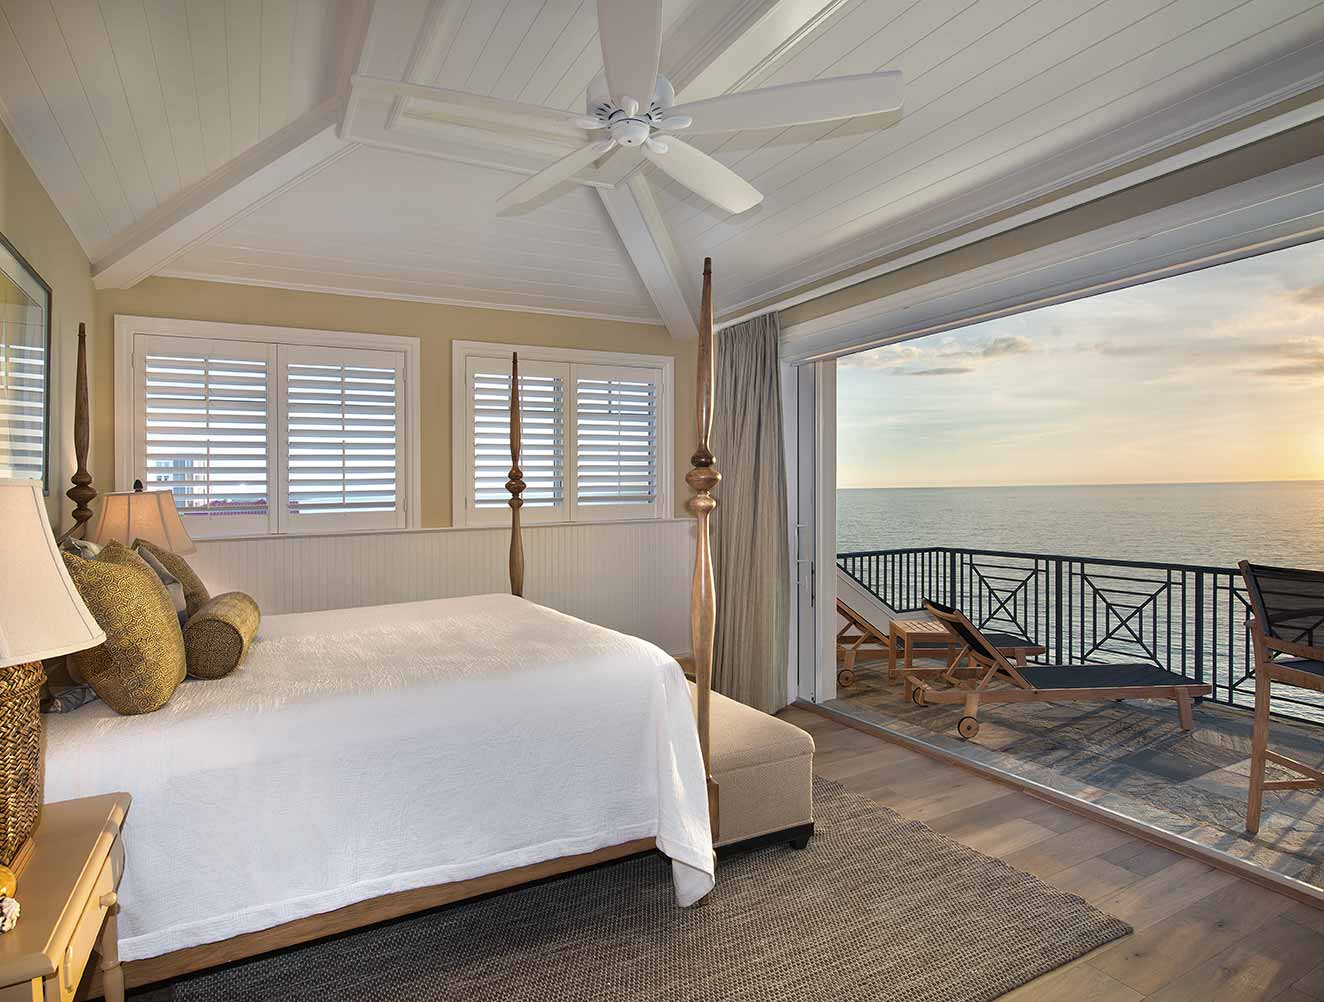 Master bedroom opens to ocean views in a Naples Florida, single family home. Designed by Kukk Architecture & Design Naples.